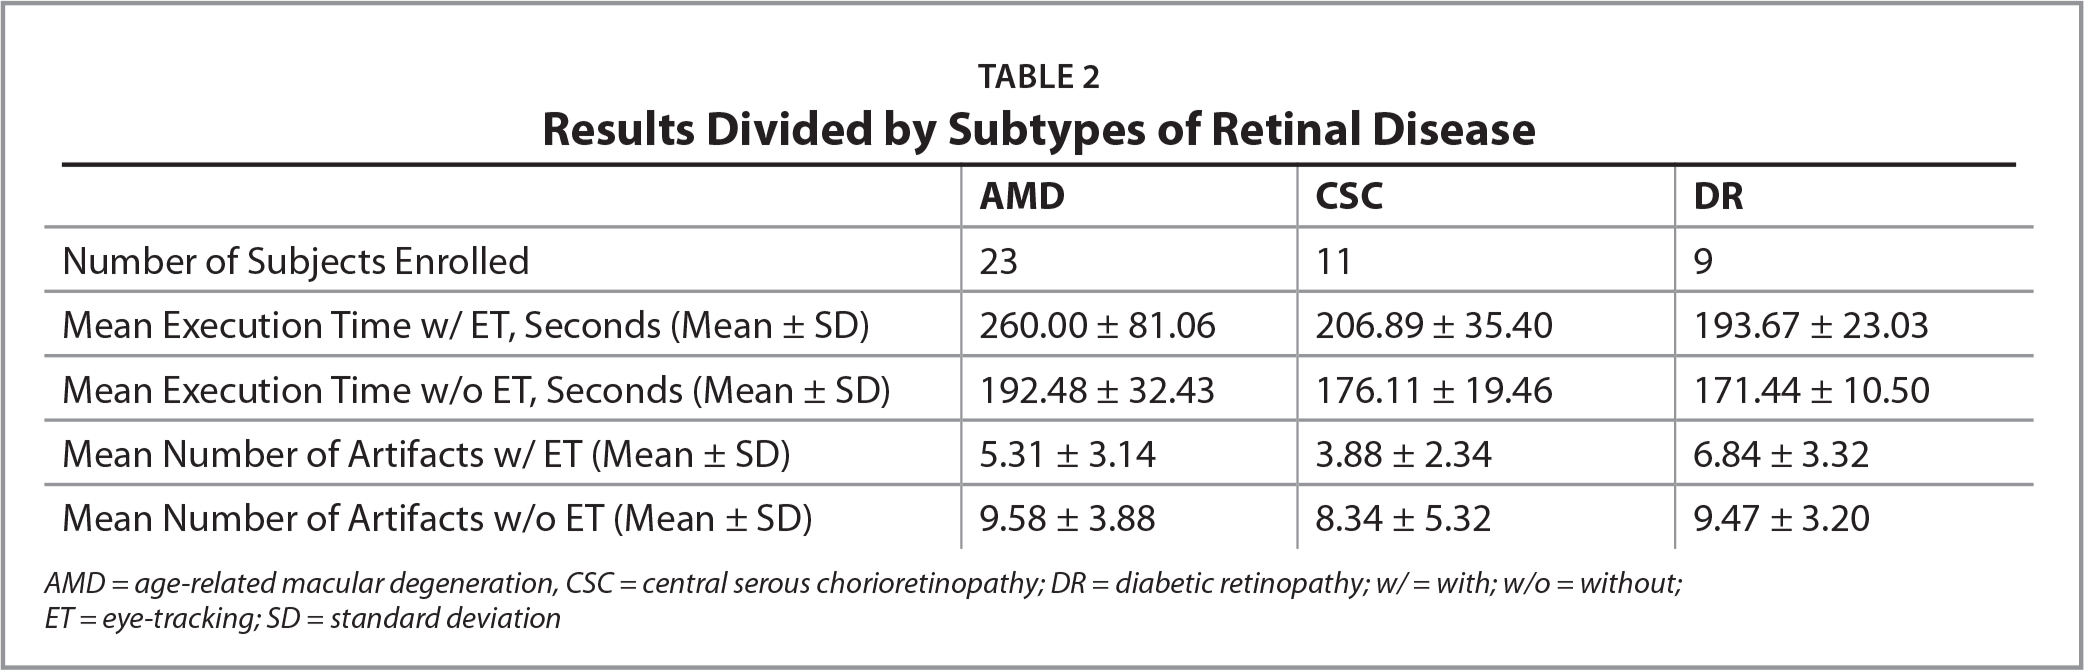 Results Divided by Subtypes of Retinal Disease